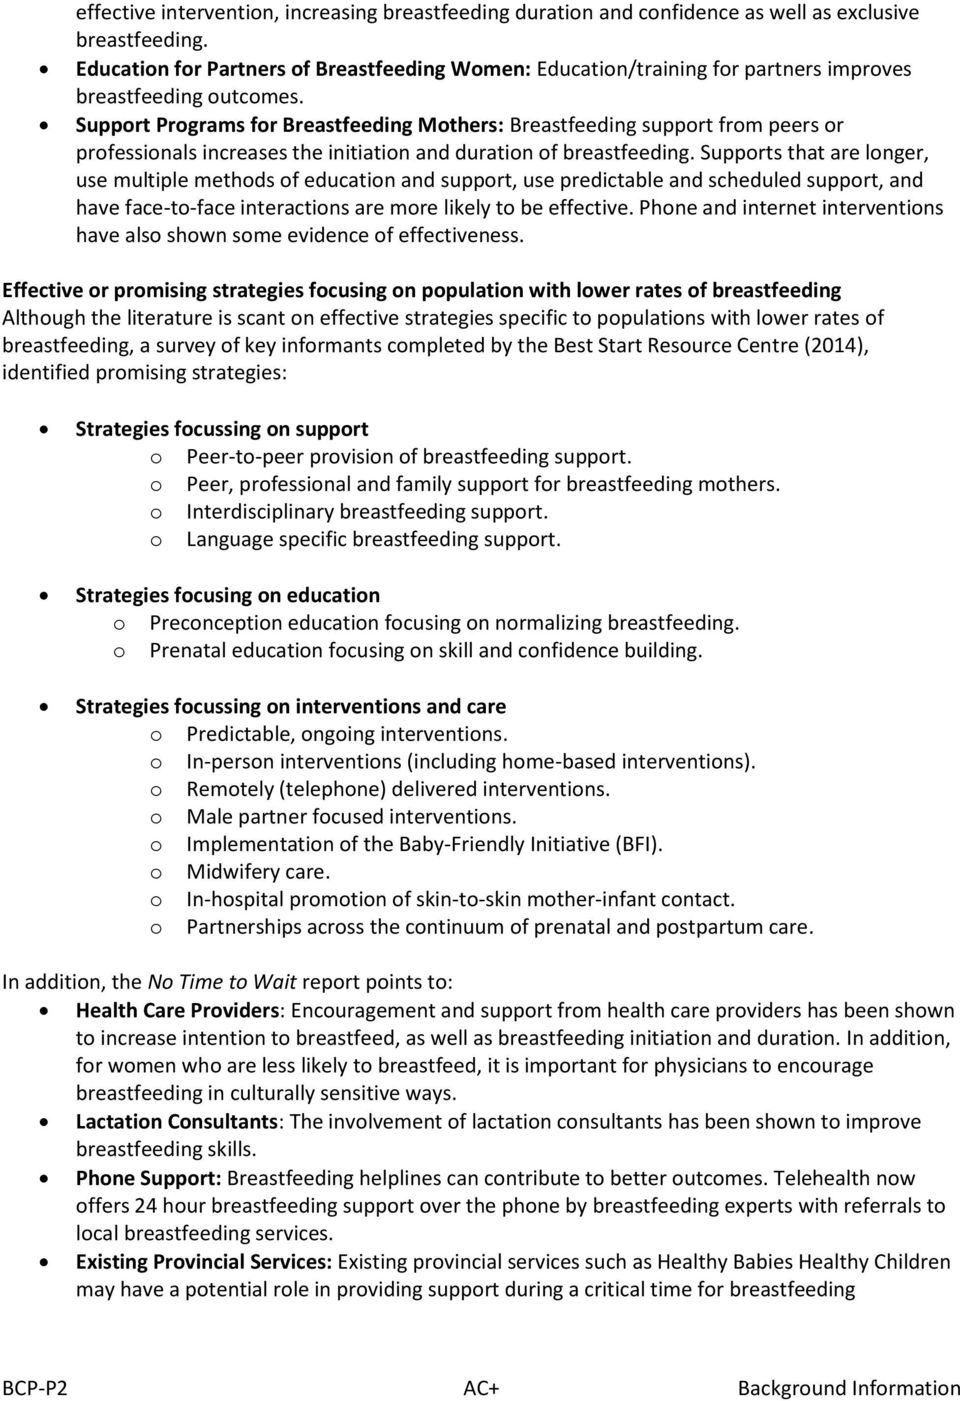 Support Programs for Breastfeeding Mothers: Breastfeeding support from peers or professionals increases the initiation and duration of breastfeeding.